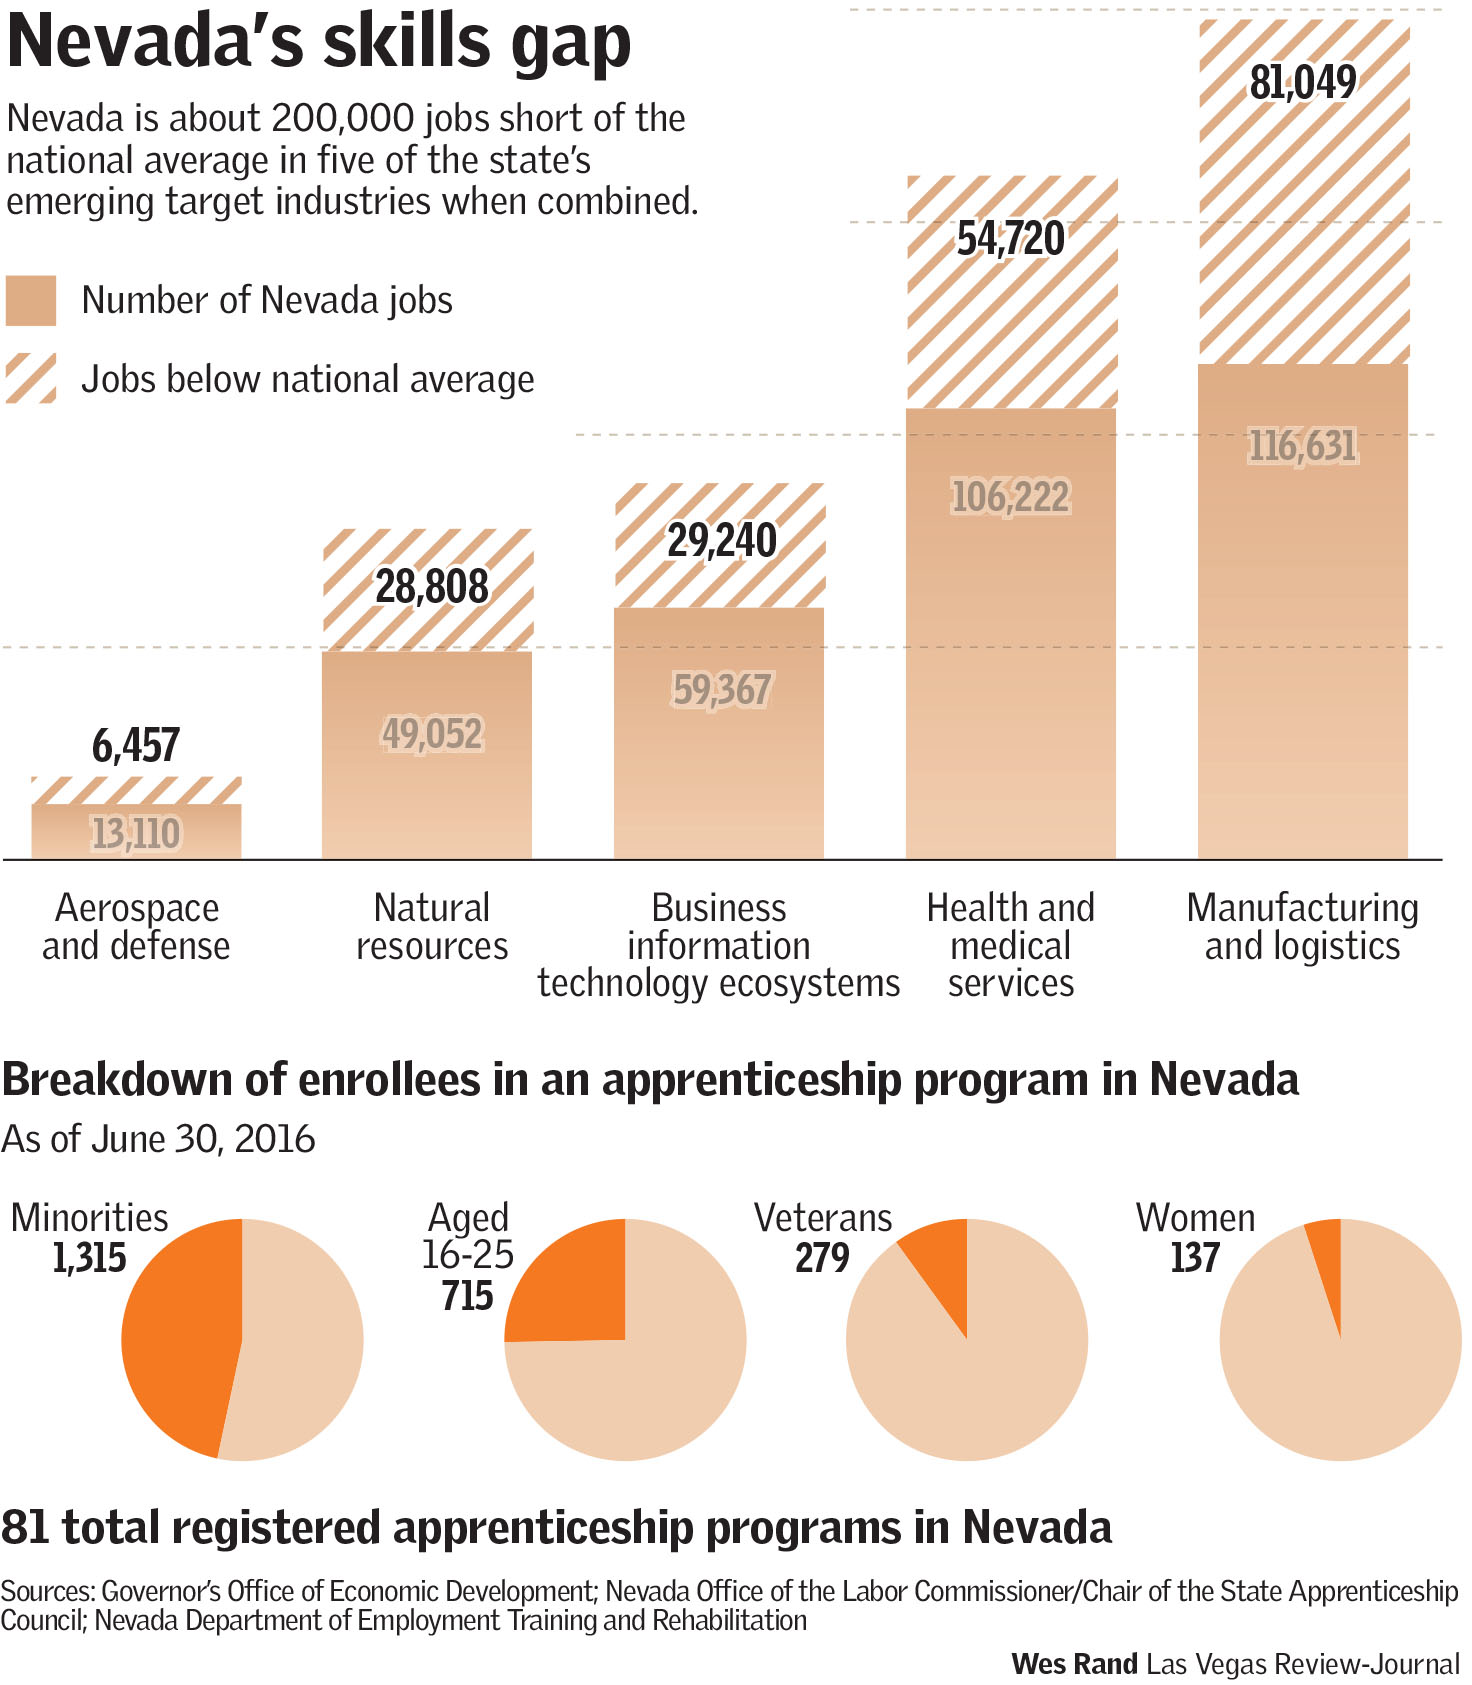 Skills gap in Nevada